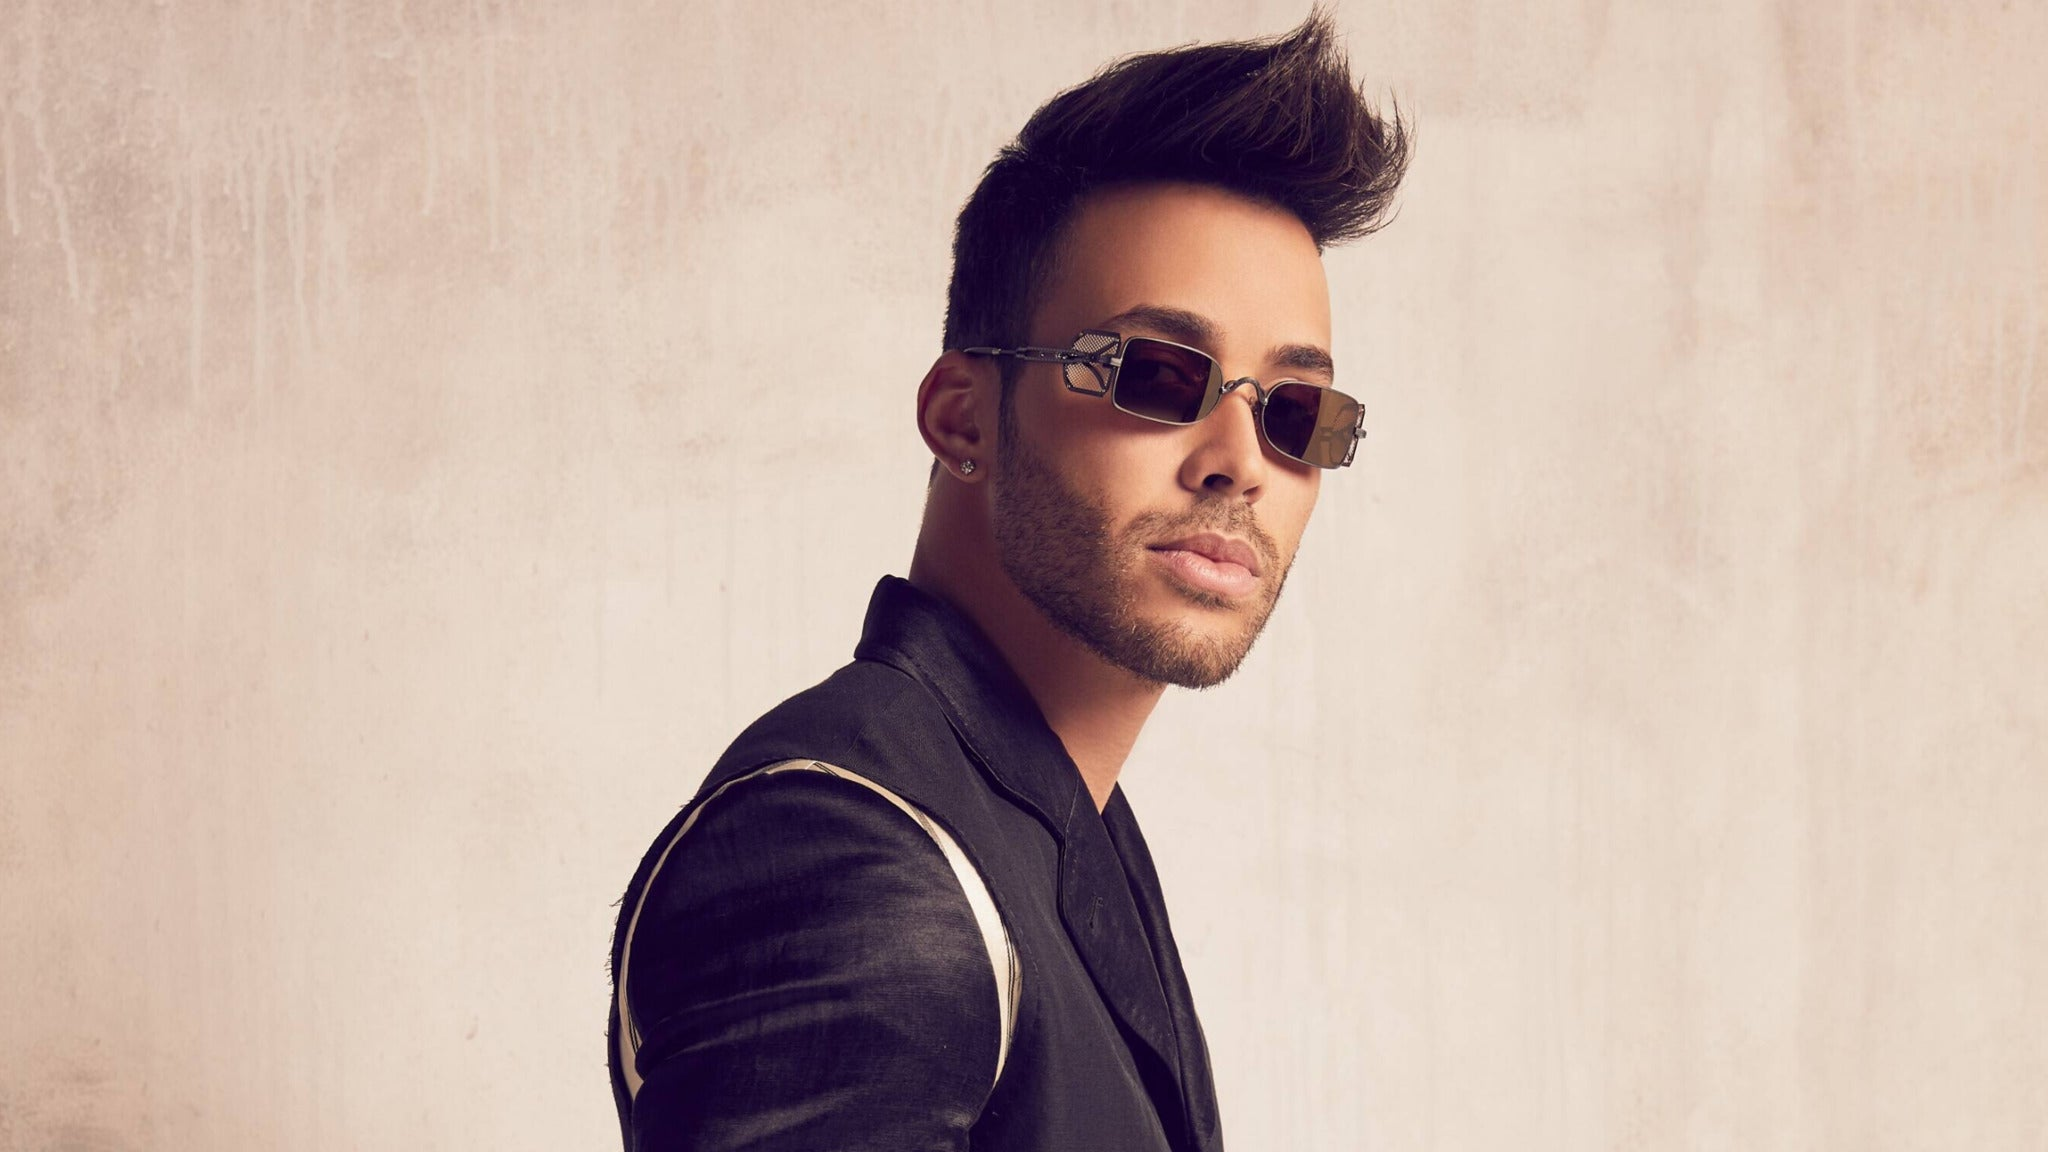 Prince Royce - ALTER EGO Tour at Paramount Theatre-Oakland